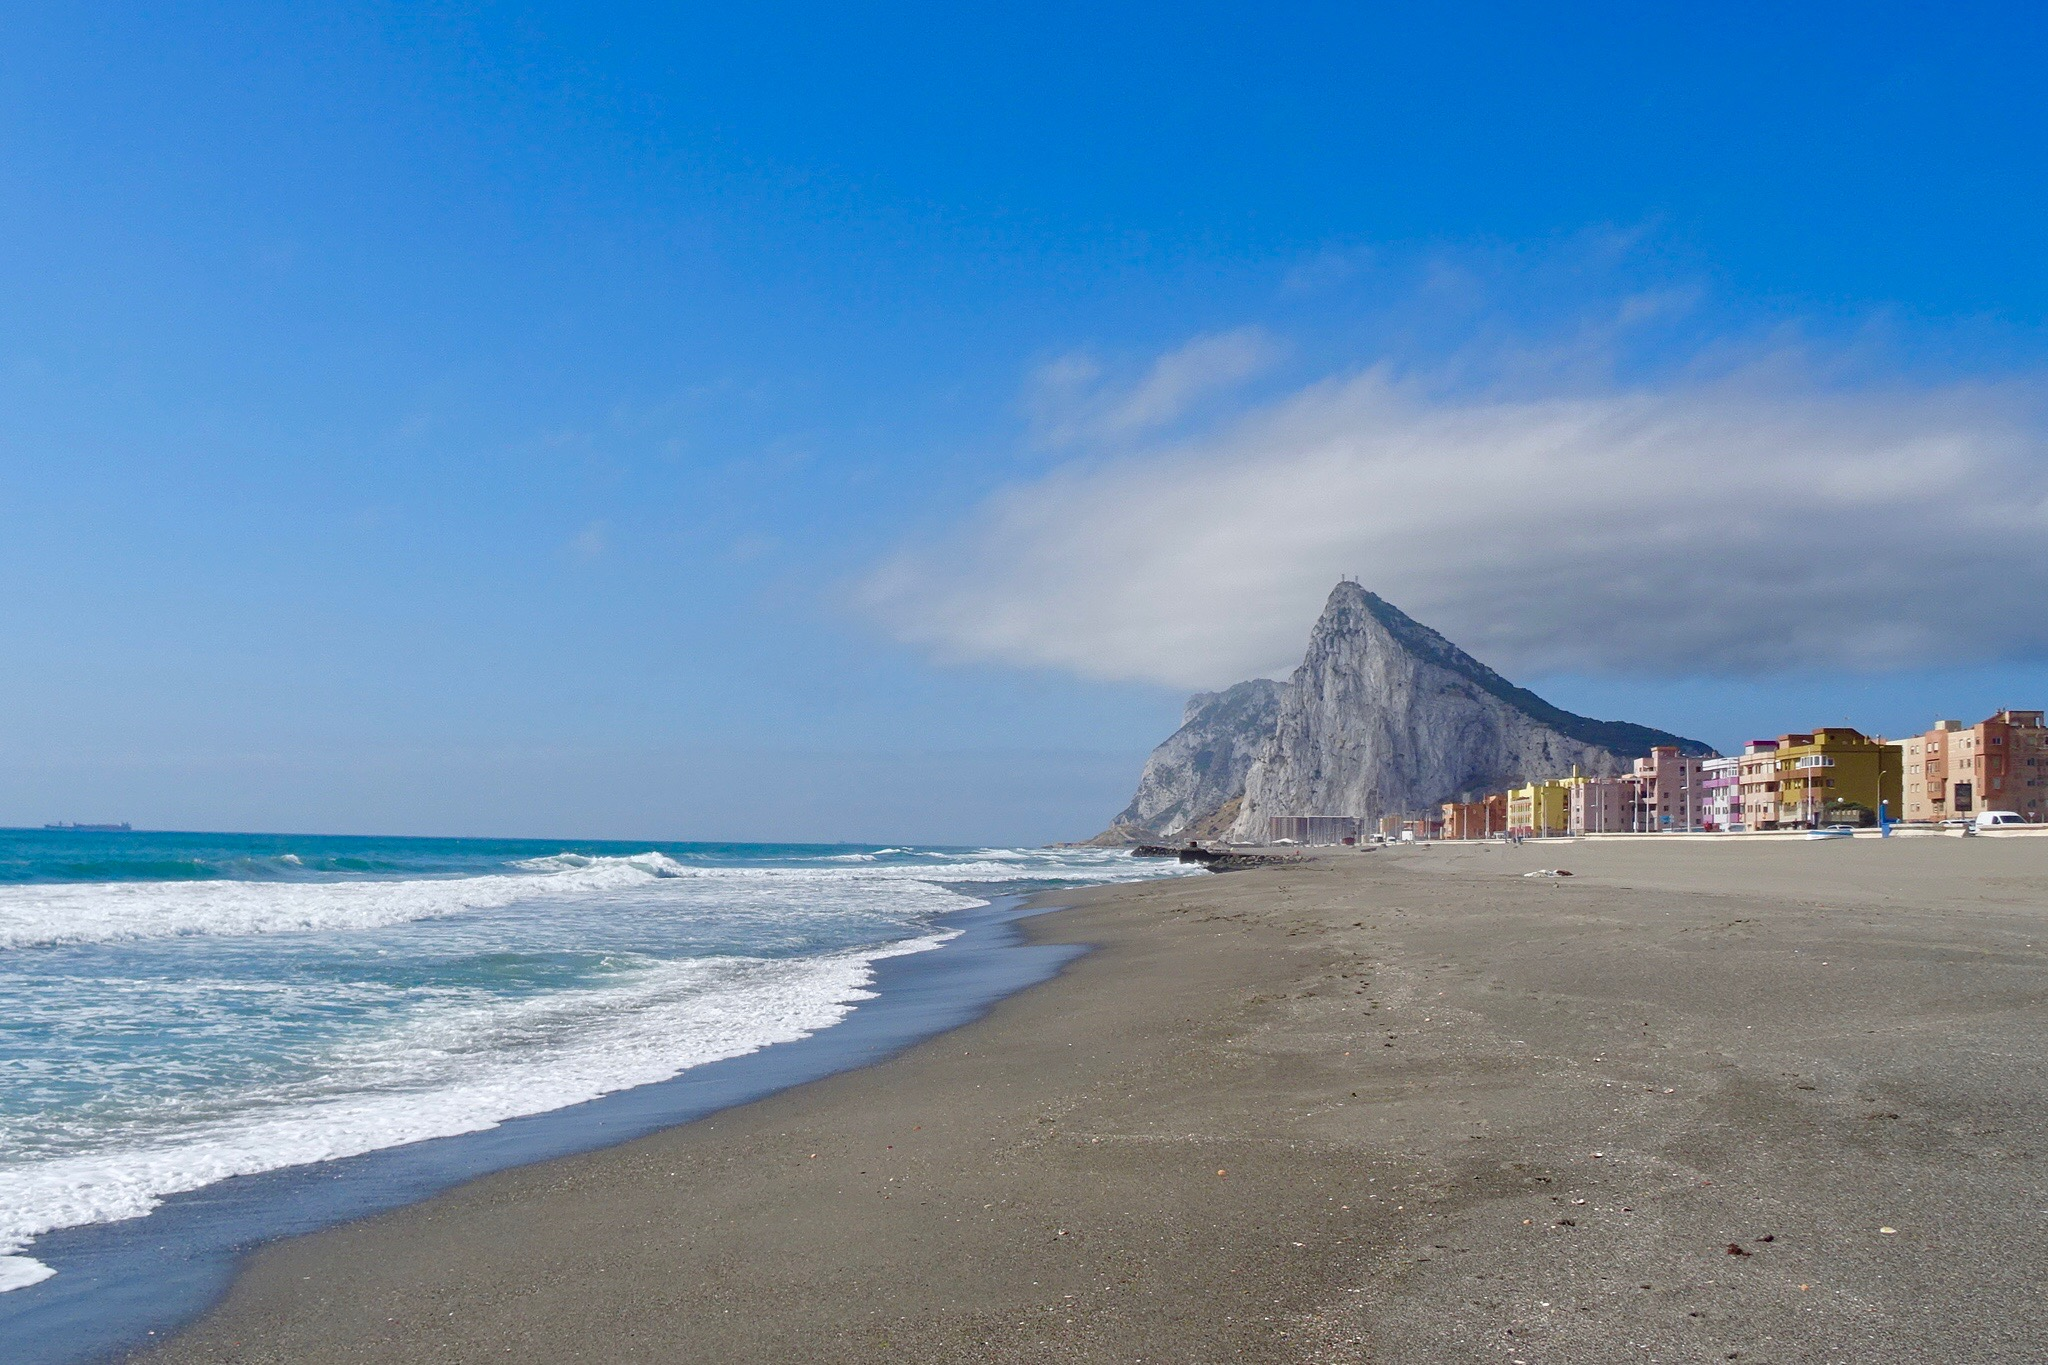 The view of the Rock of Gibraltar from Playa de Levante, La Línea, Spain